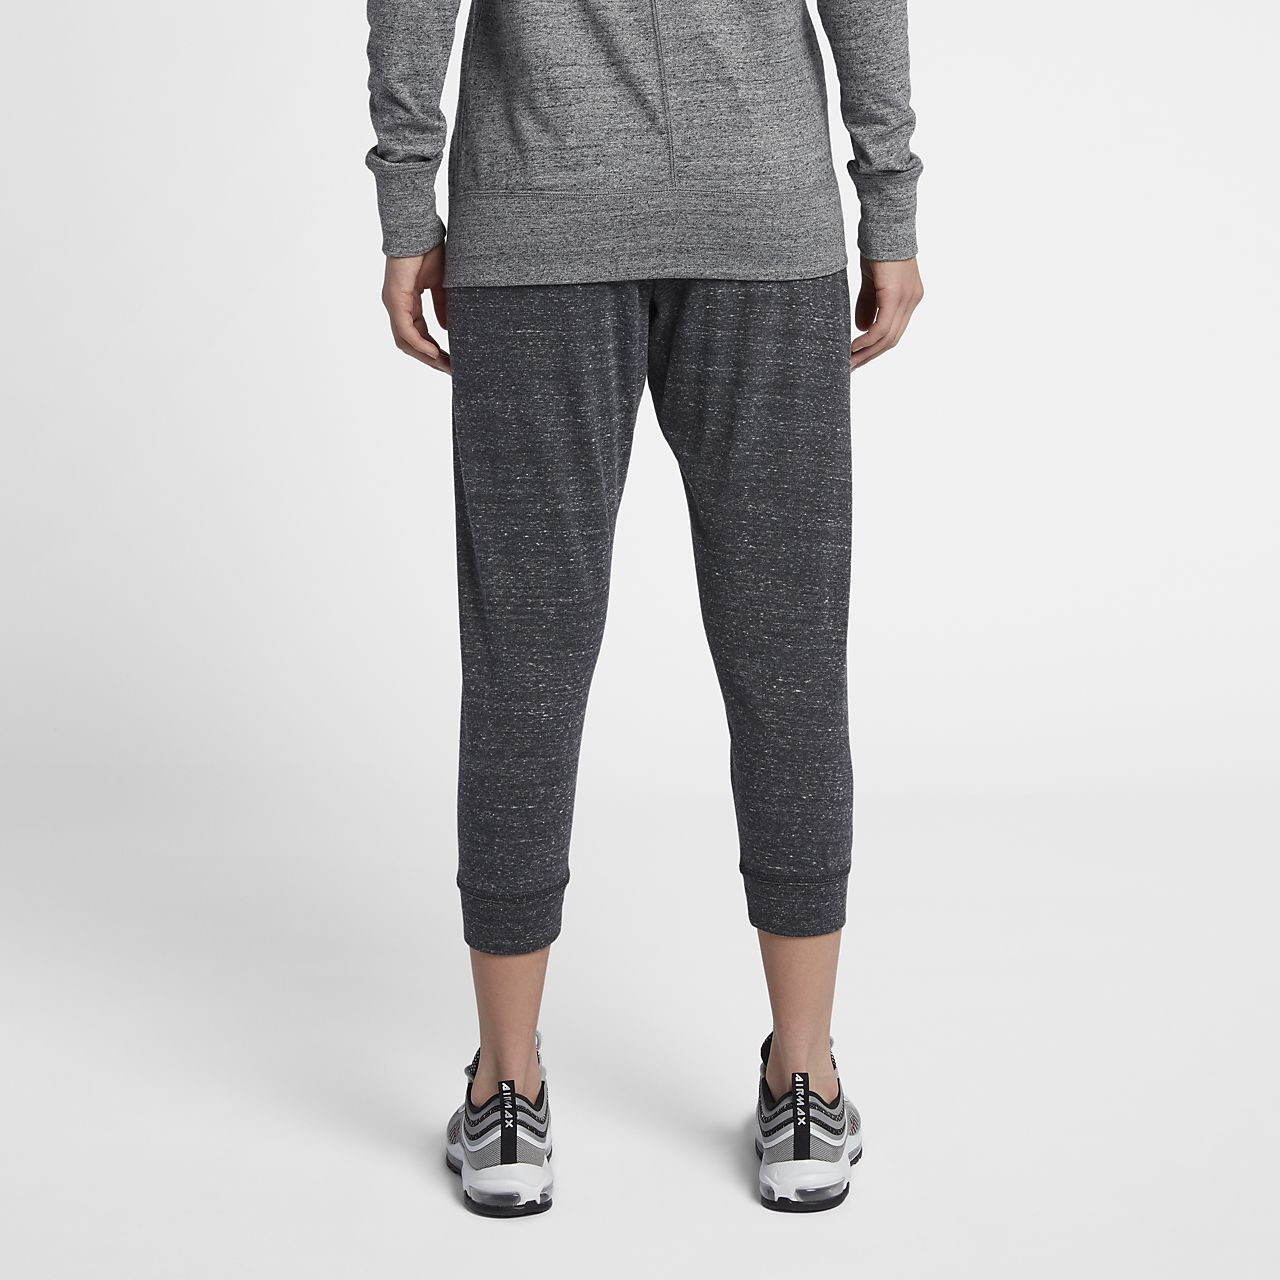 Nike Sportswear Gym Vintage Women's Pants Black Heather/Sail